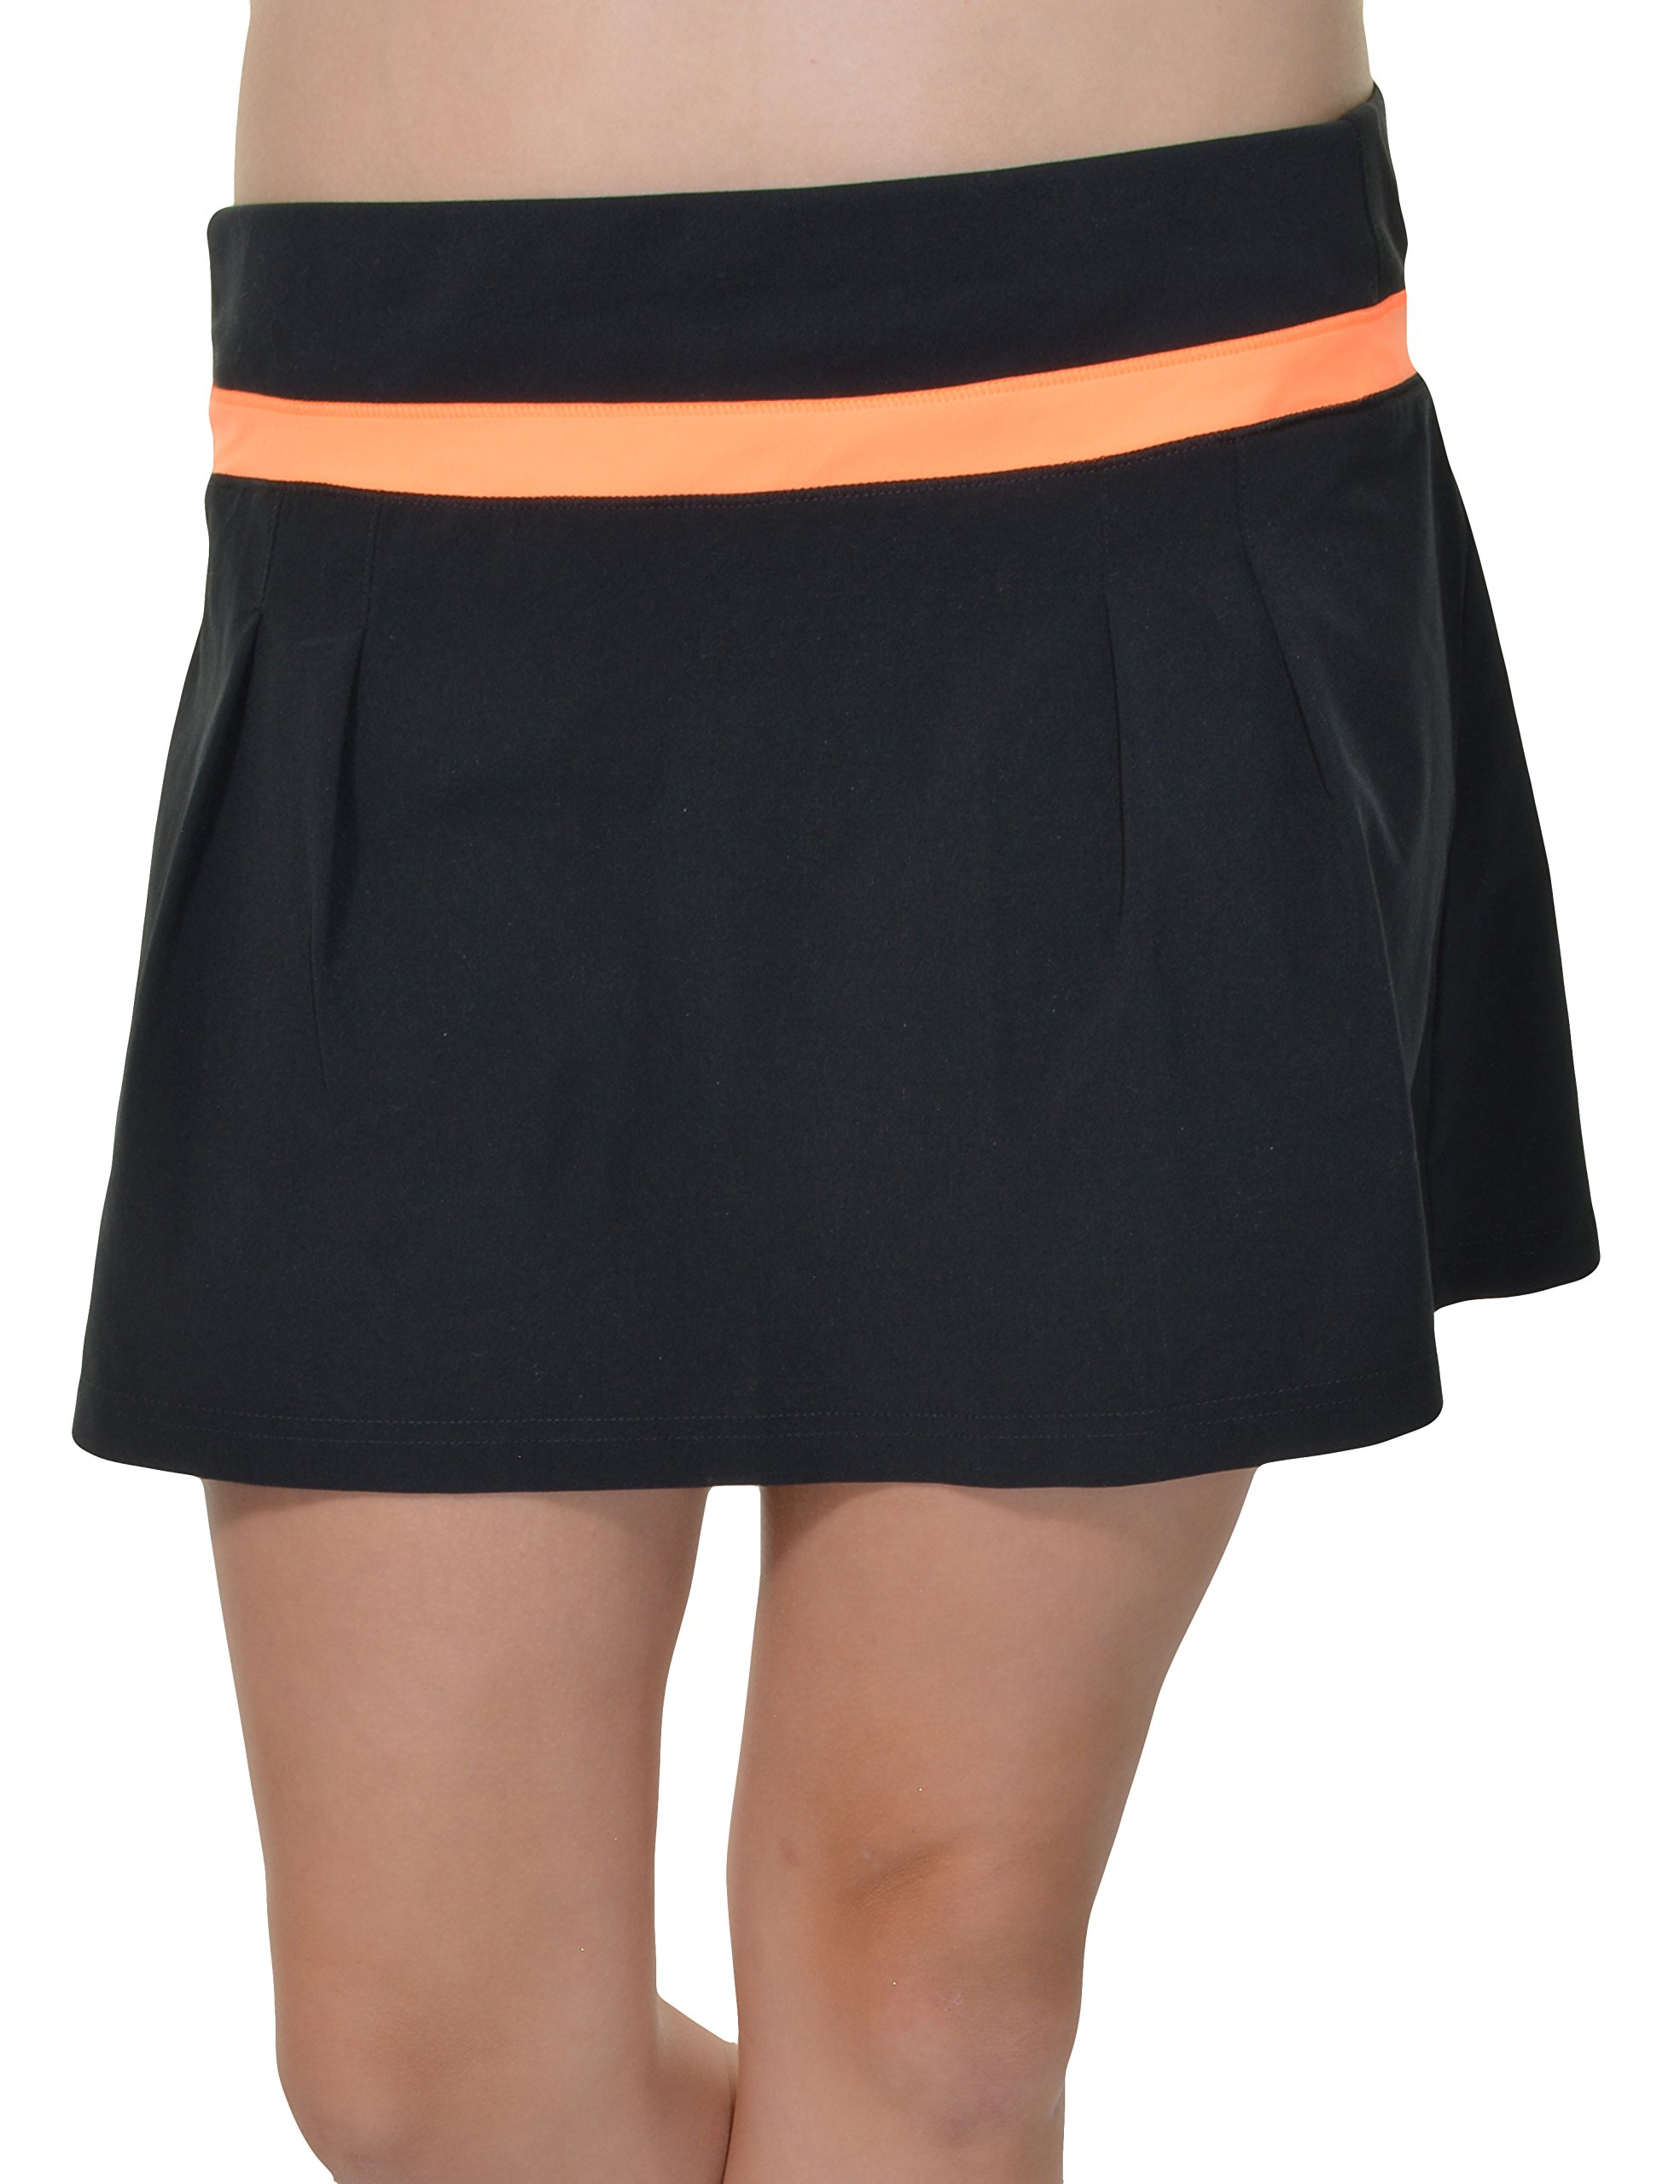 Adidas Climalite Pleated ALine Athletic Skort (Black/Glow Orange, Small) by adidas